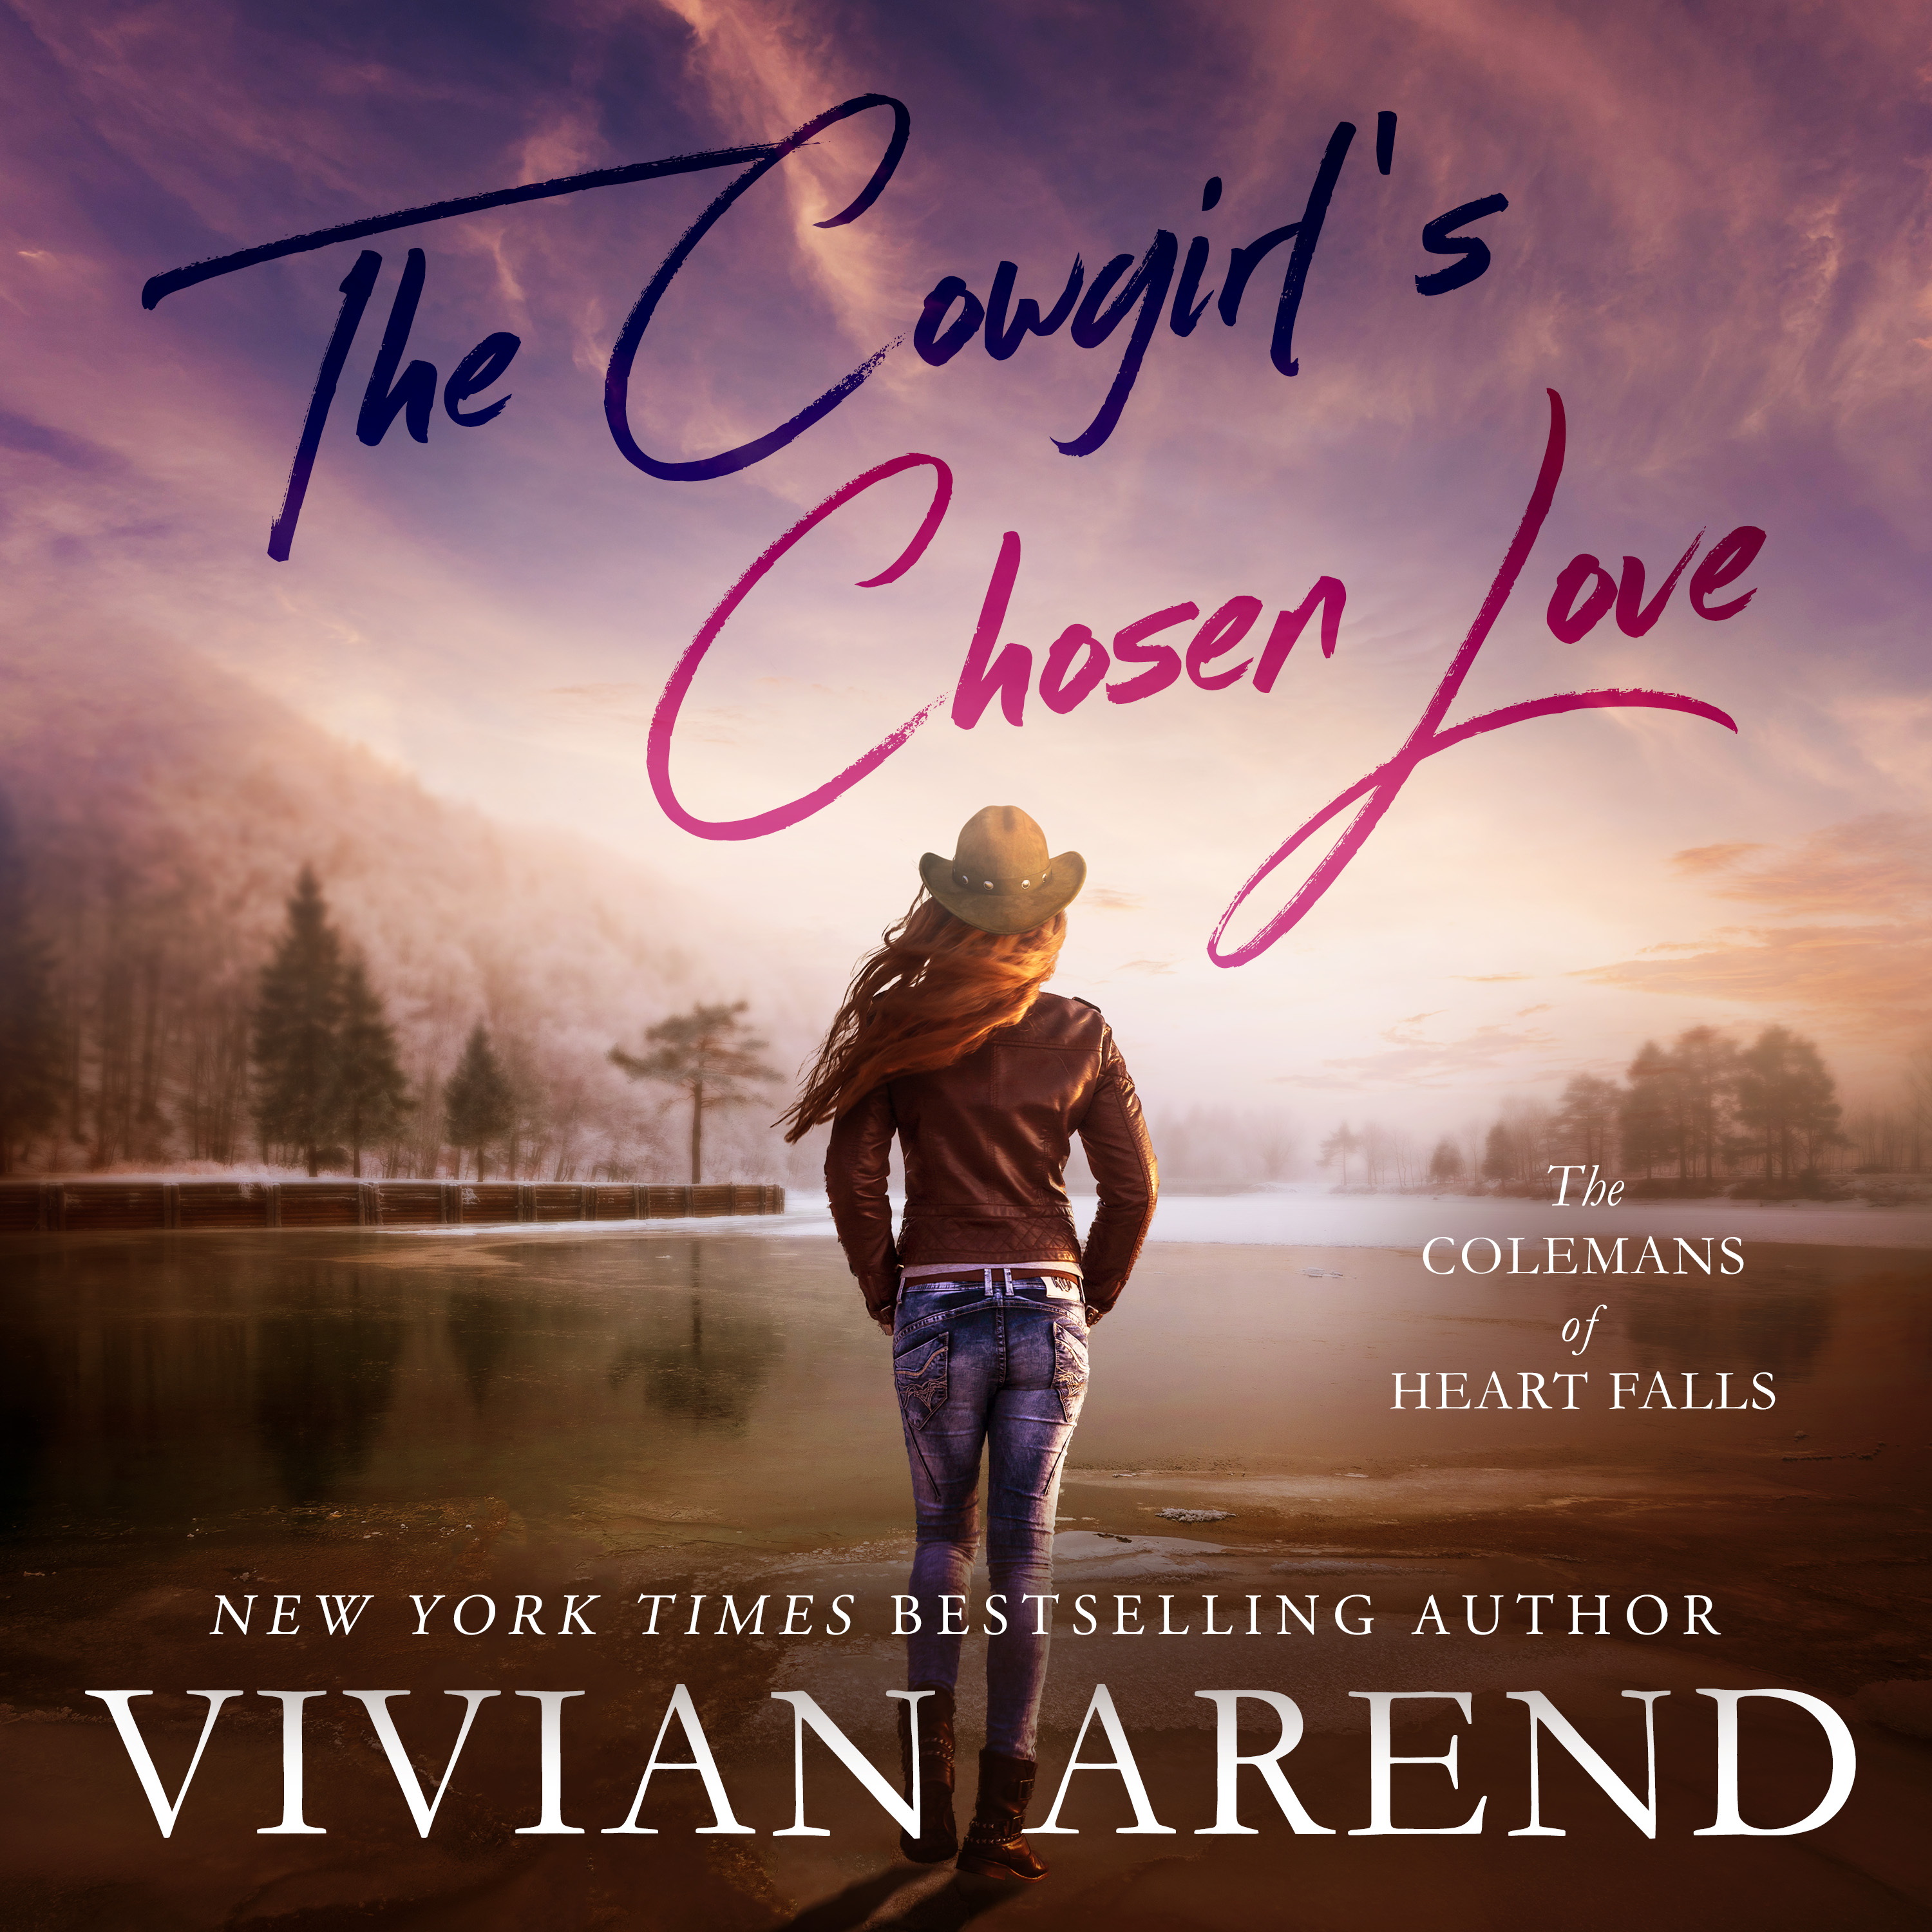 The Cowgirl's Chosen Love audiobook by Vivian Arend